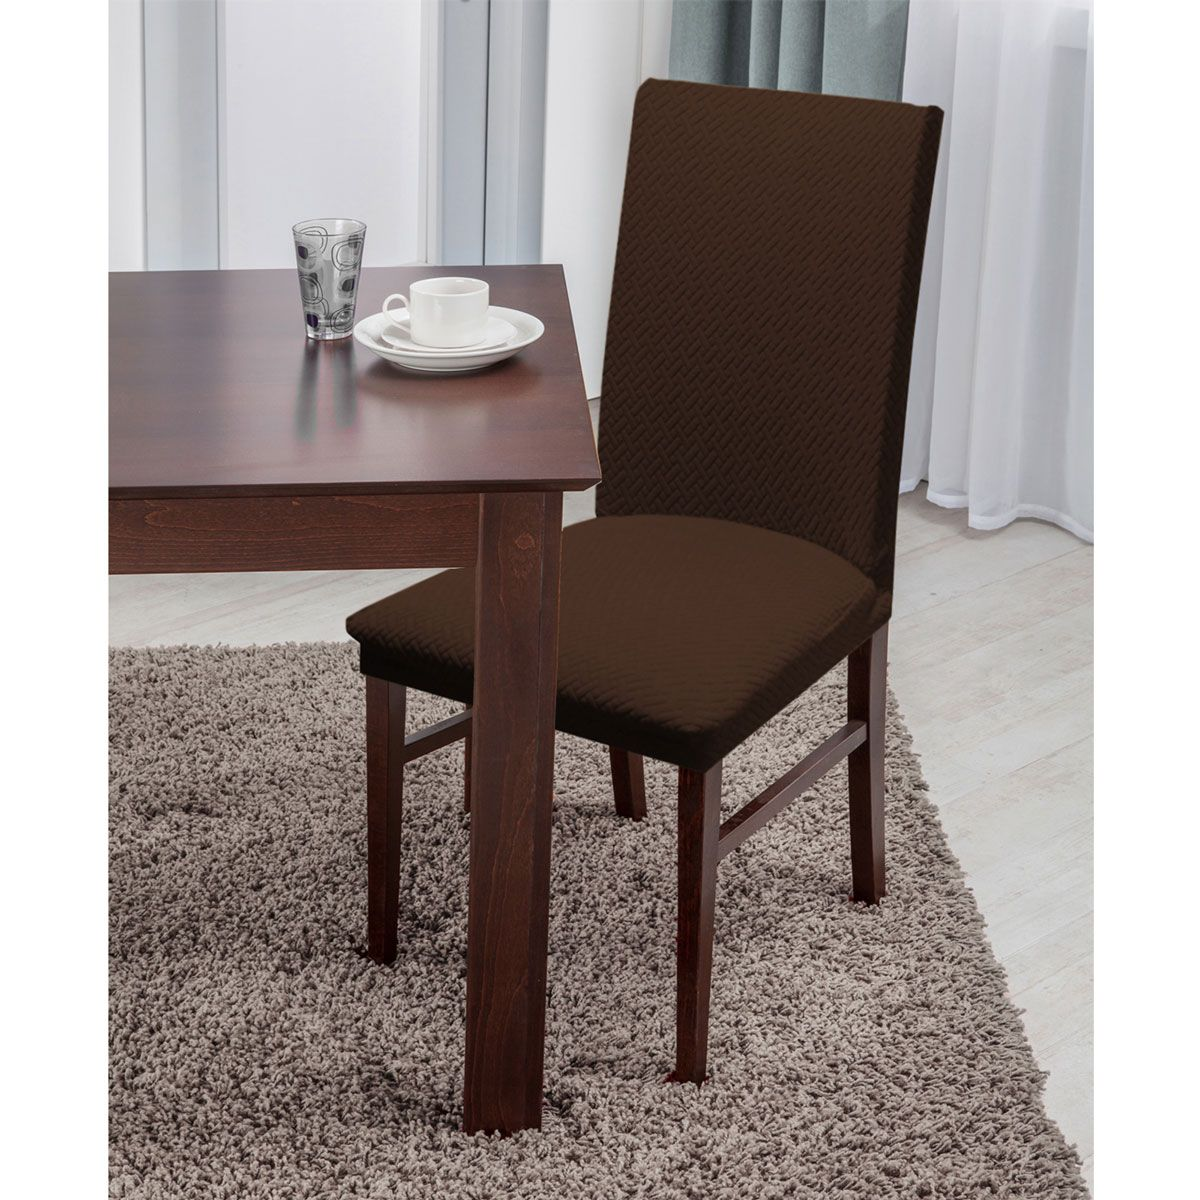 Basket Weave Texture Dining Chair Cover Stretch Form Fitting Brilliant Fabric Chair Covers For Dining Room Chairs Inspiration